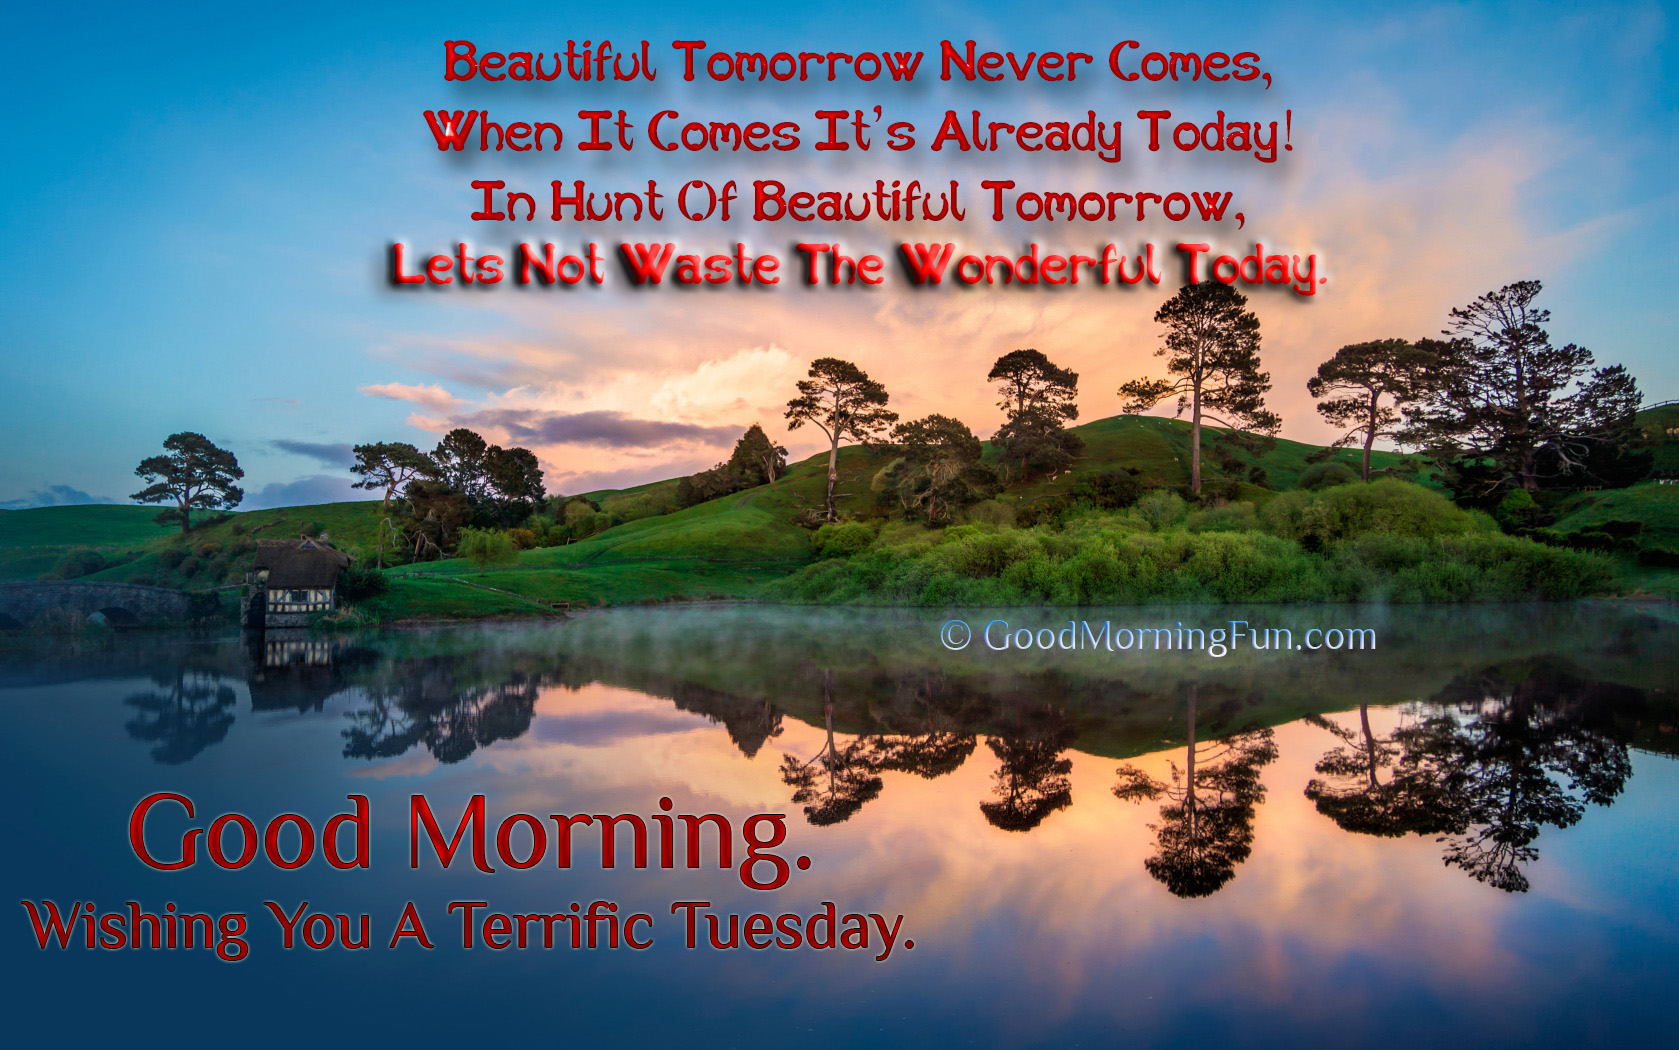 Peaceful Morning Beautiful Tomorrow Live Today Quote Good Morning Fun